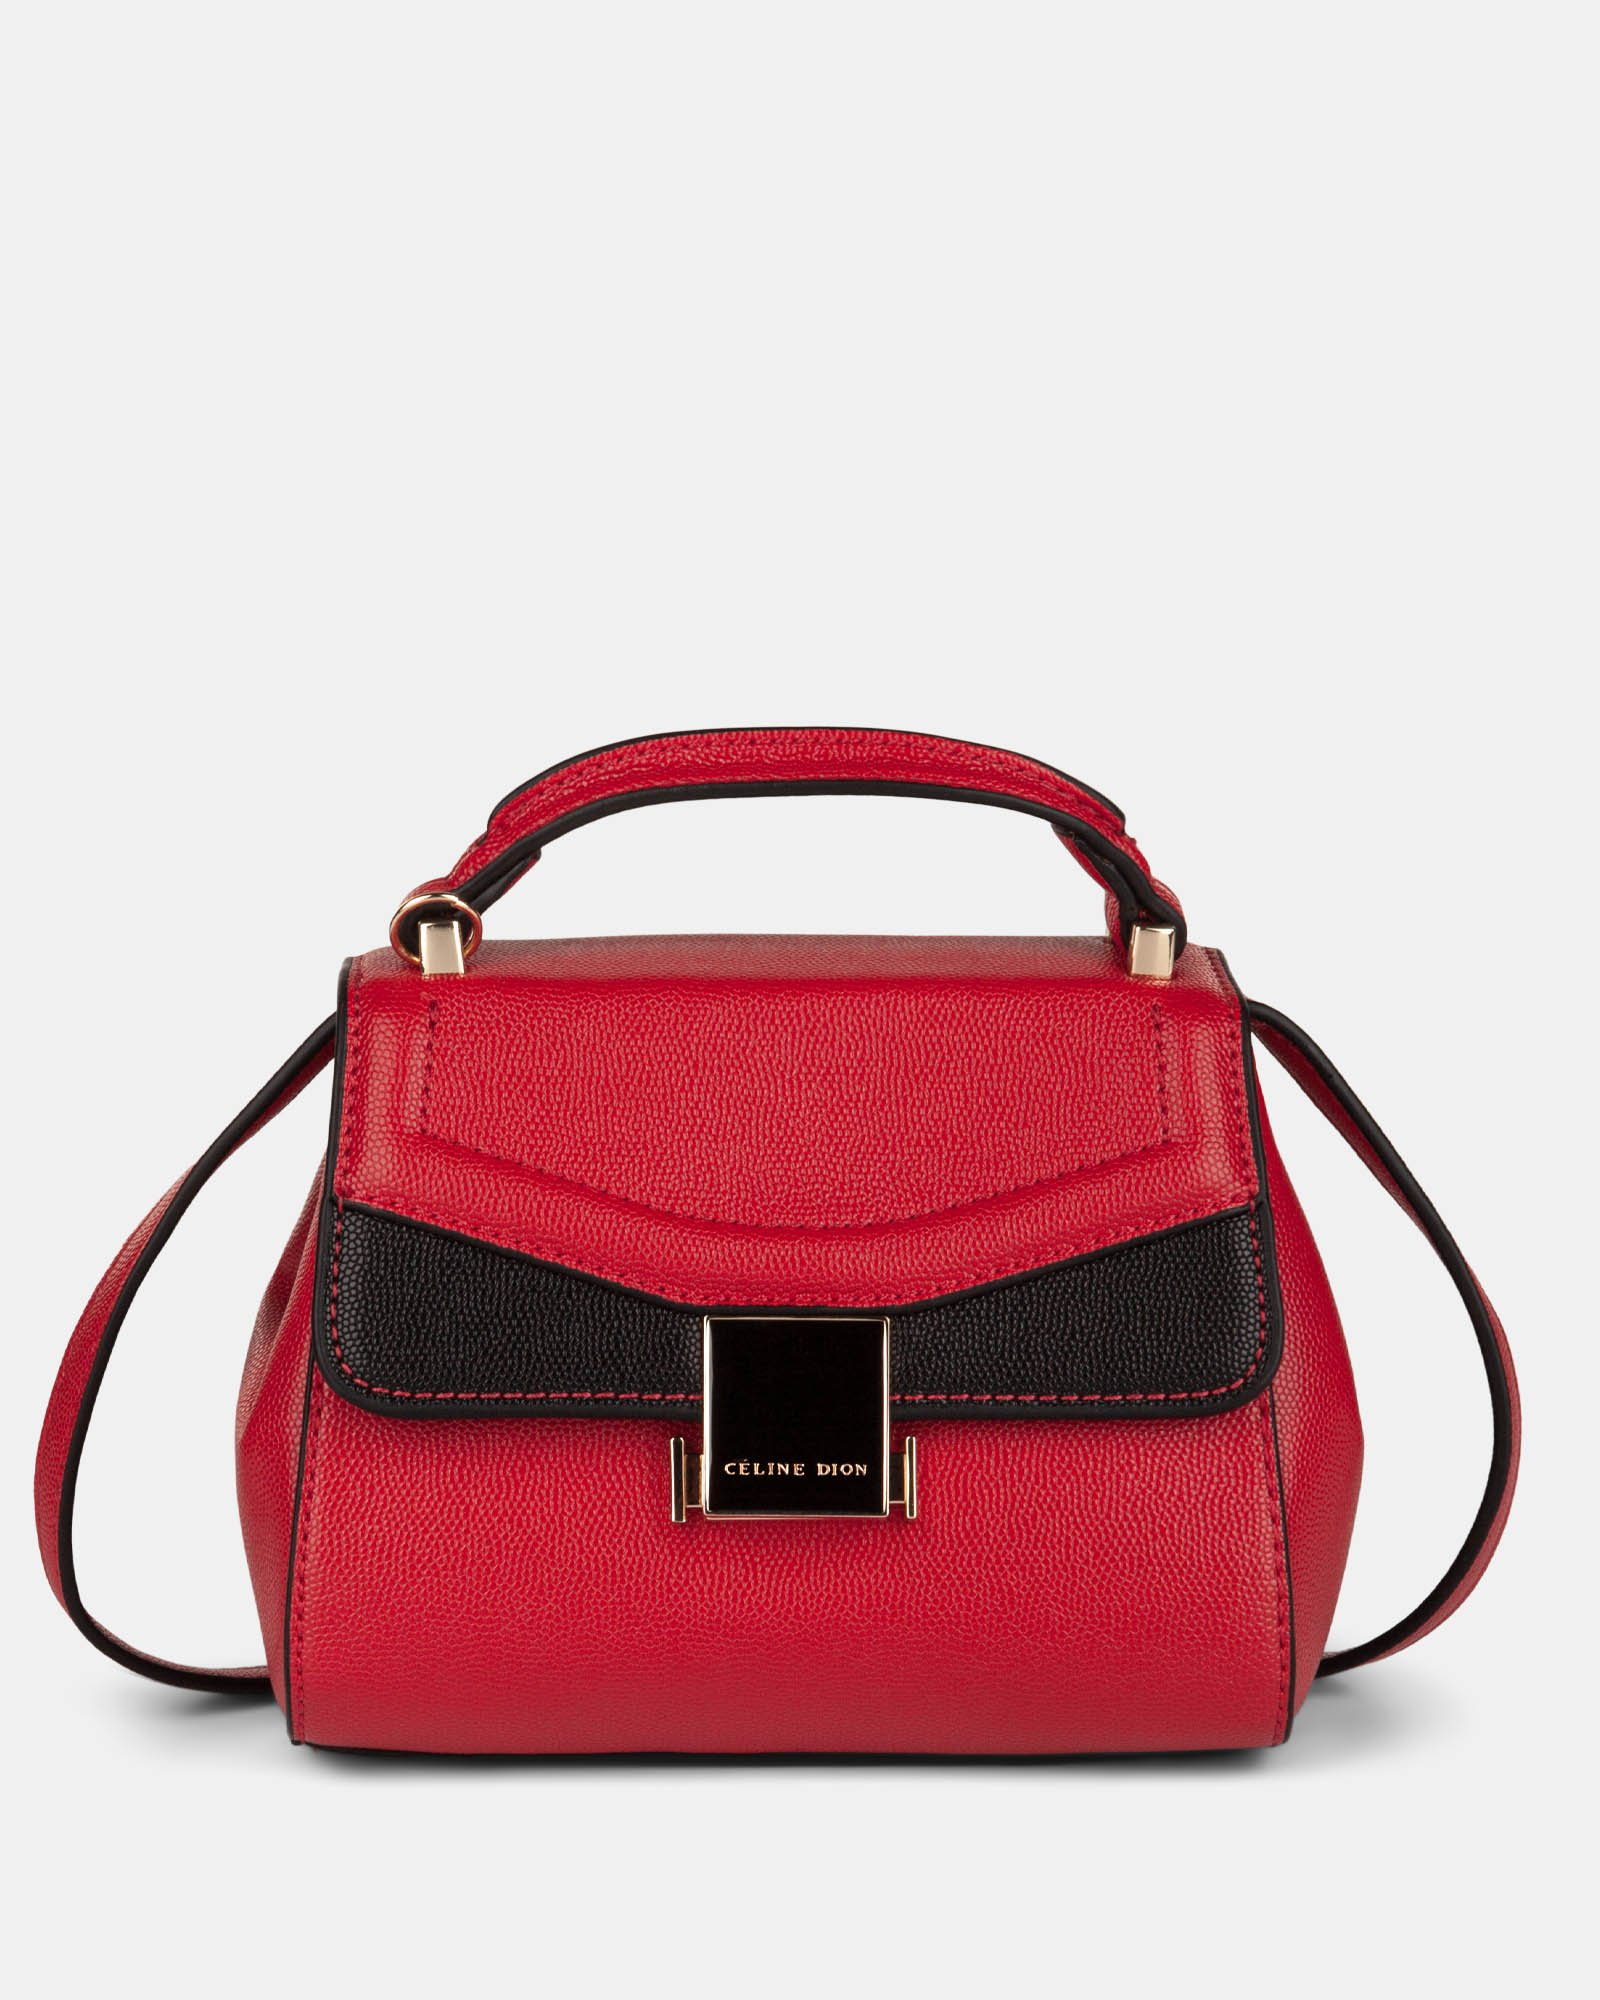 Scale – Small Handle bag with interior zippered pocket - Red - Céline Dion - Zoom